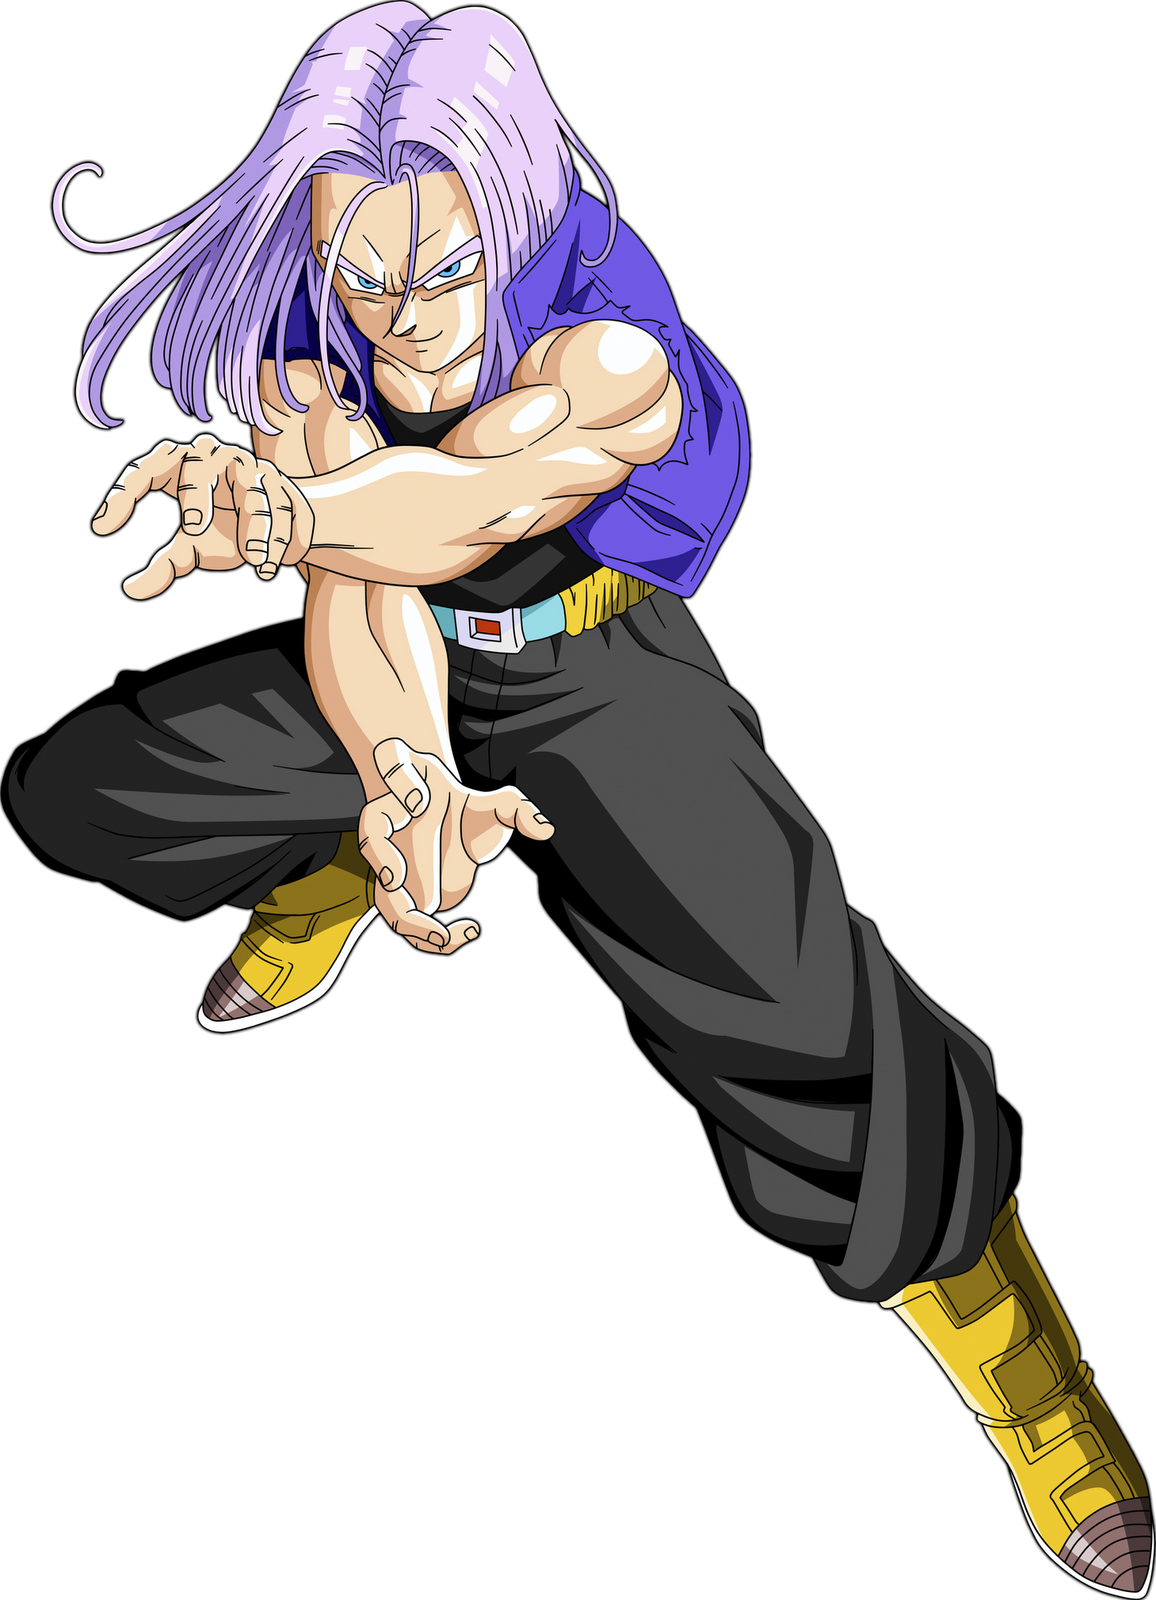 Image render dragon ball z trunks rp chat wiki - Dragon ball z 21 ...